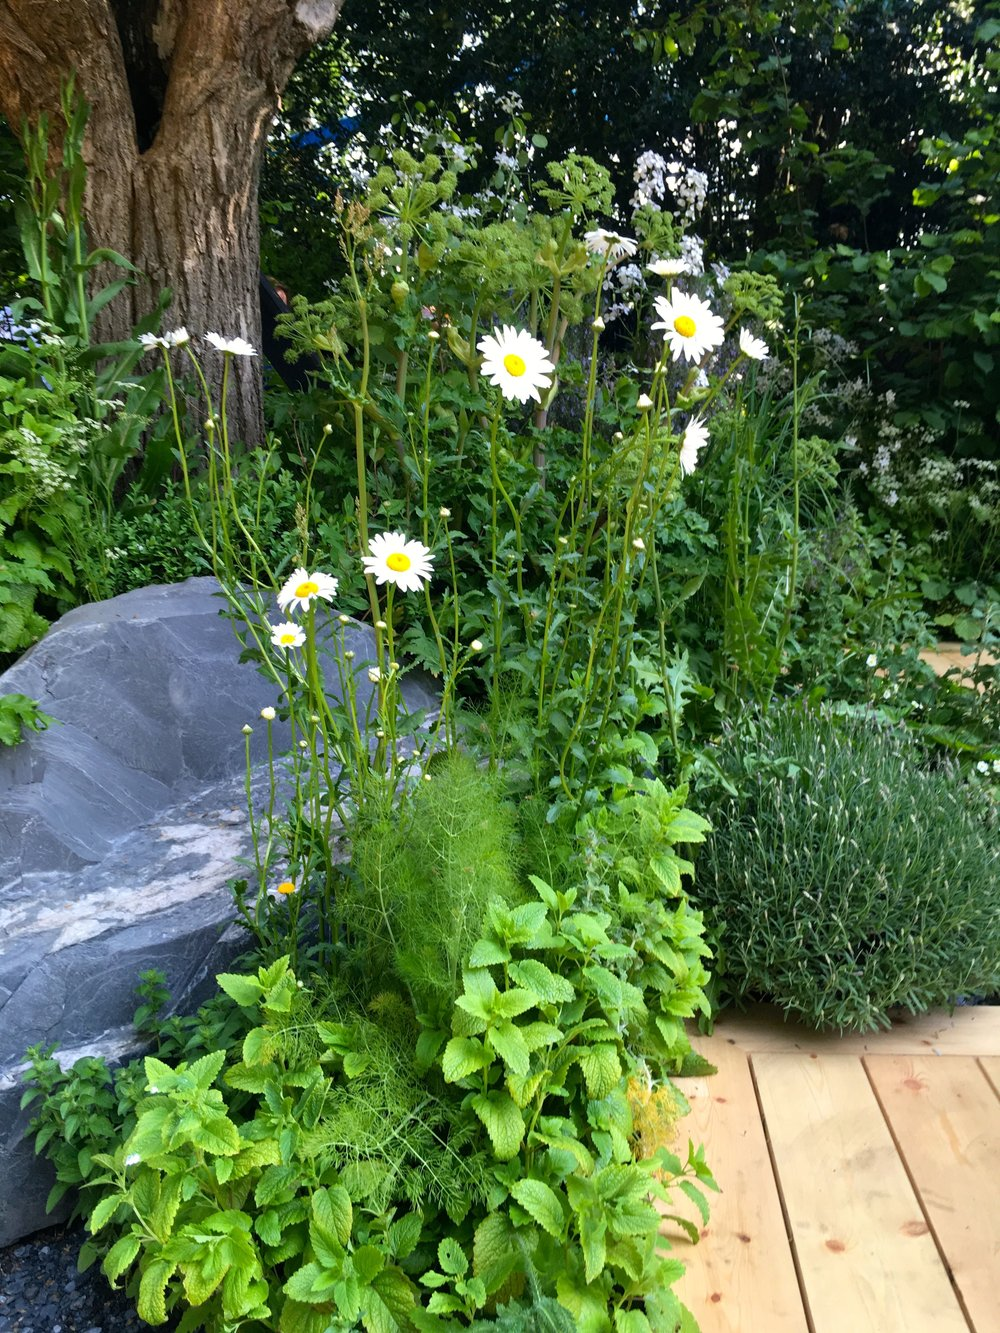 TRANQUIL PLANTING IN THE VIKING CRUISES IN THE GOLD MEDAL WINNING WELLNESS GARDEN